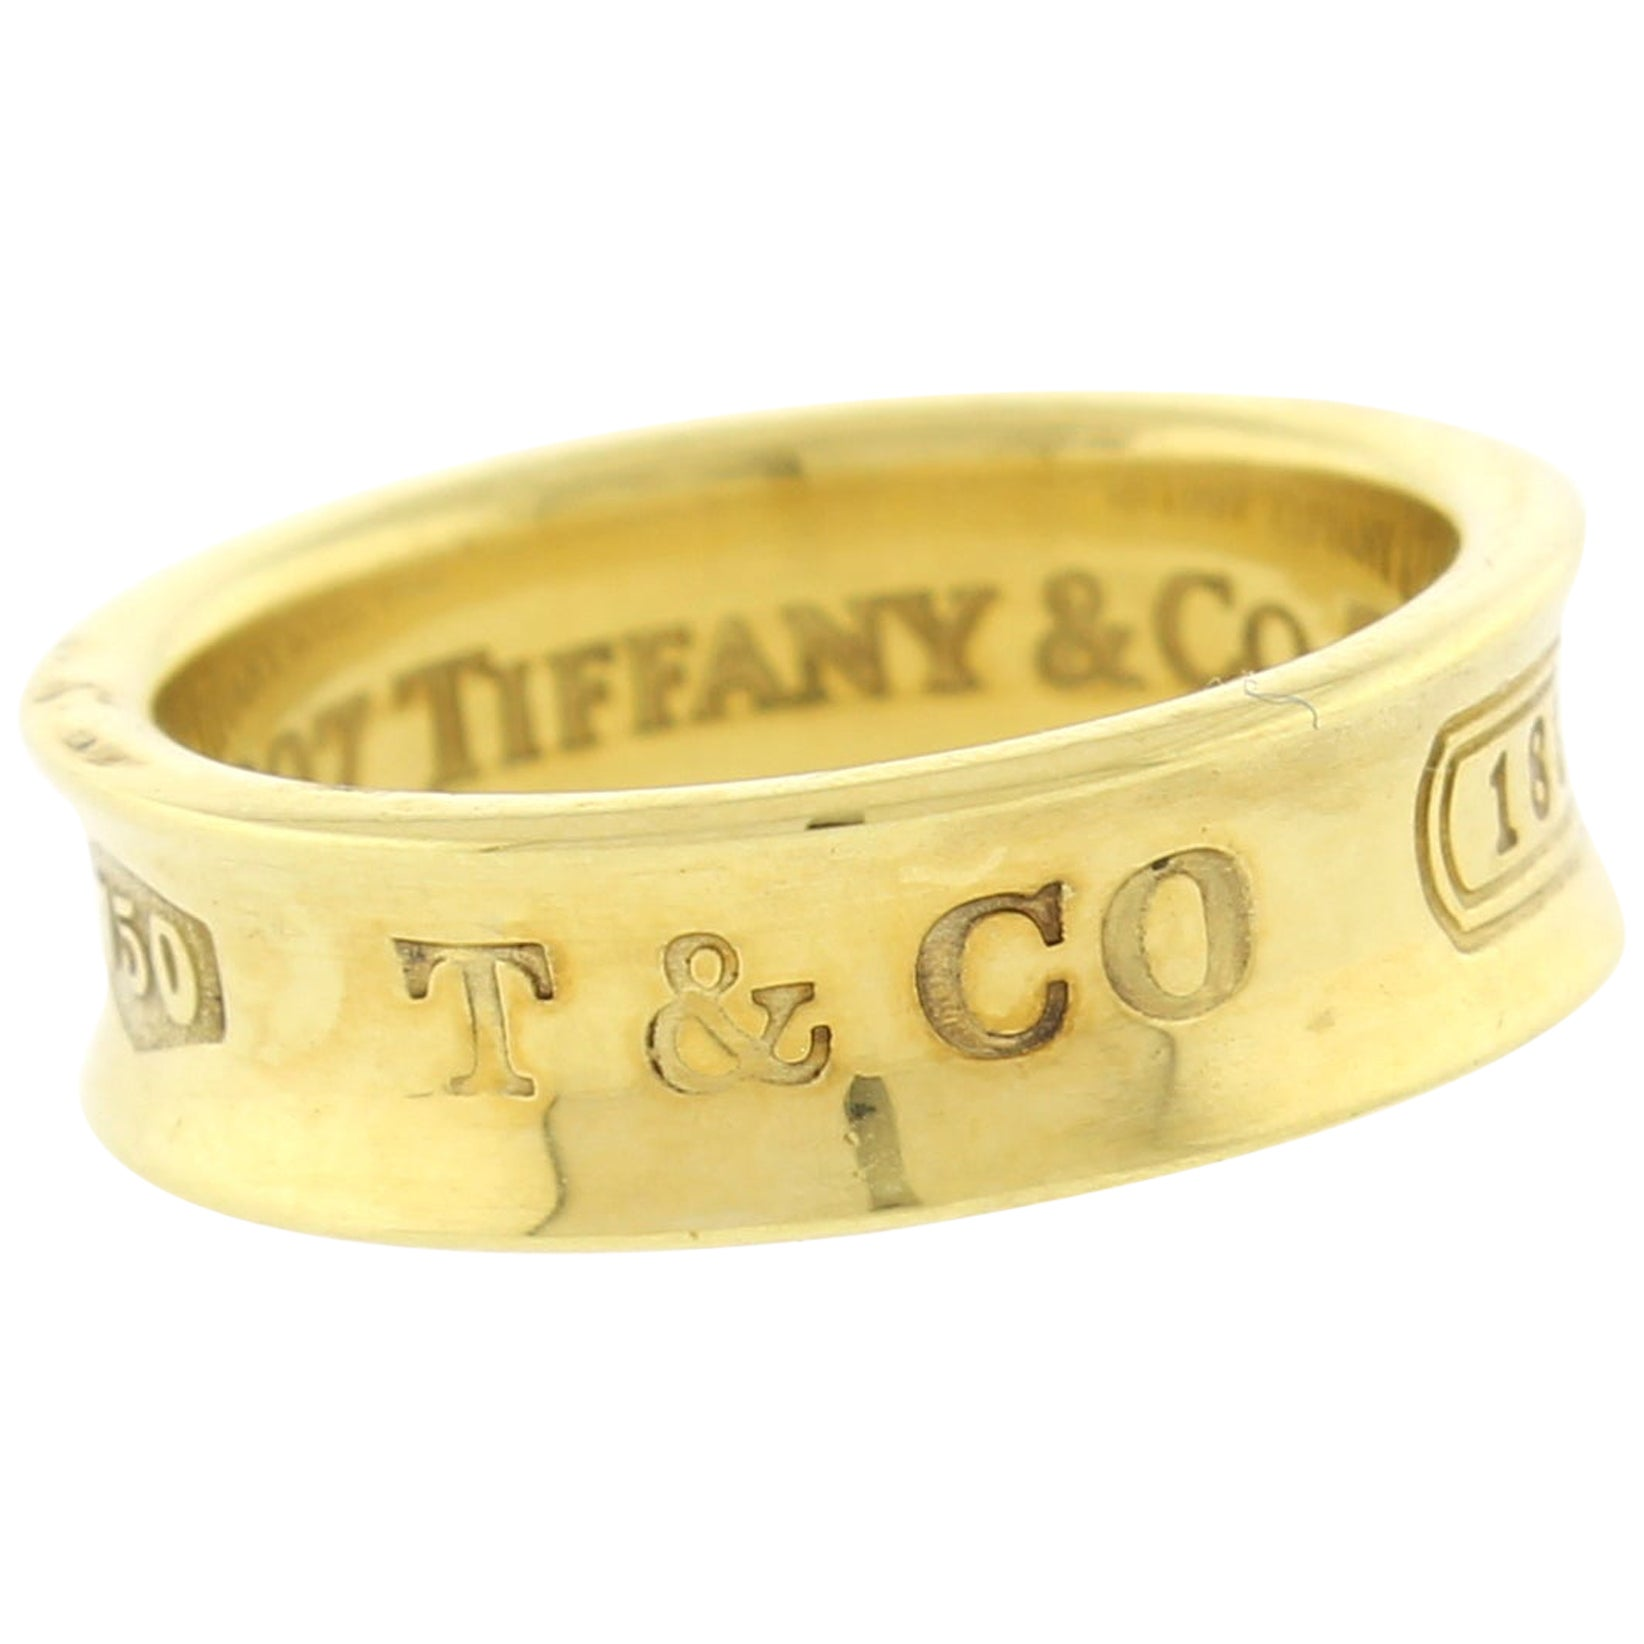 Tiffany & Co. 1837 Gold Band-Ring